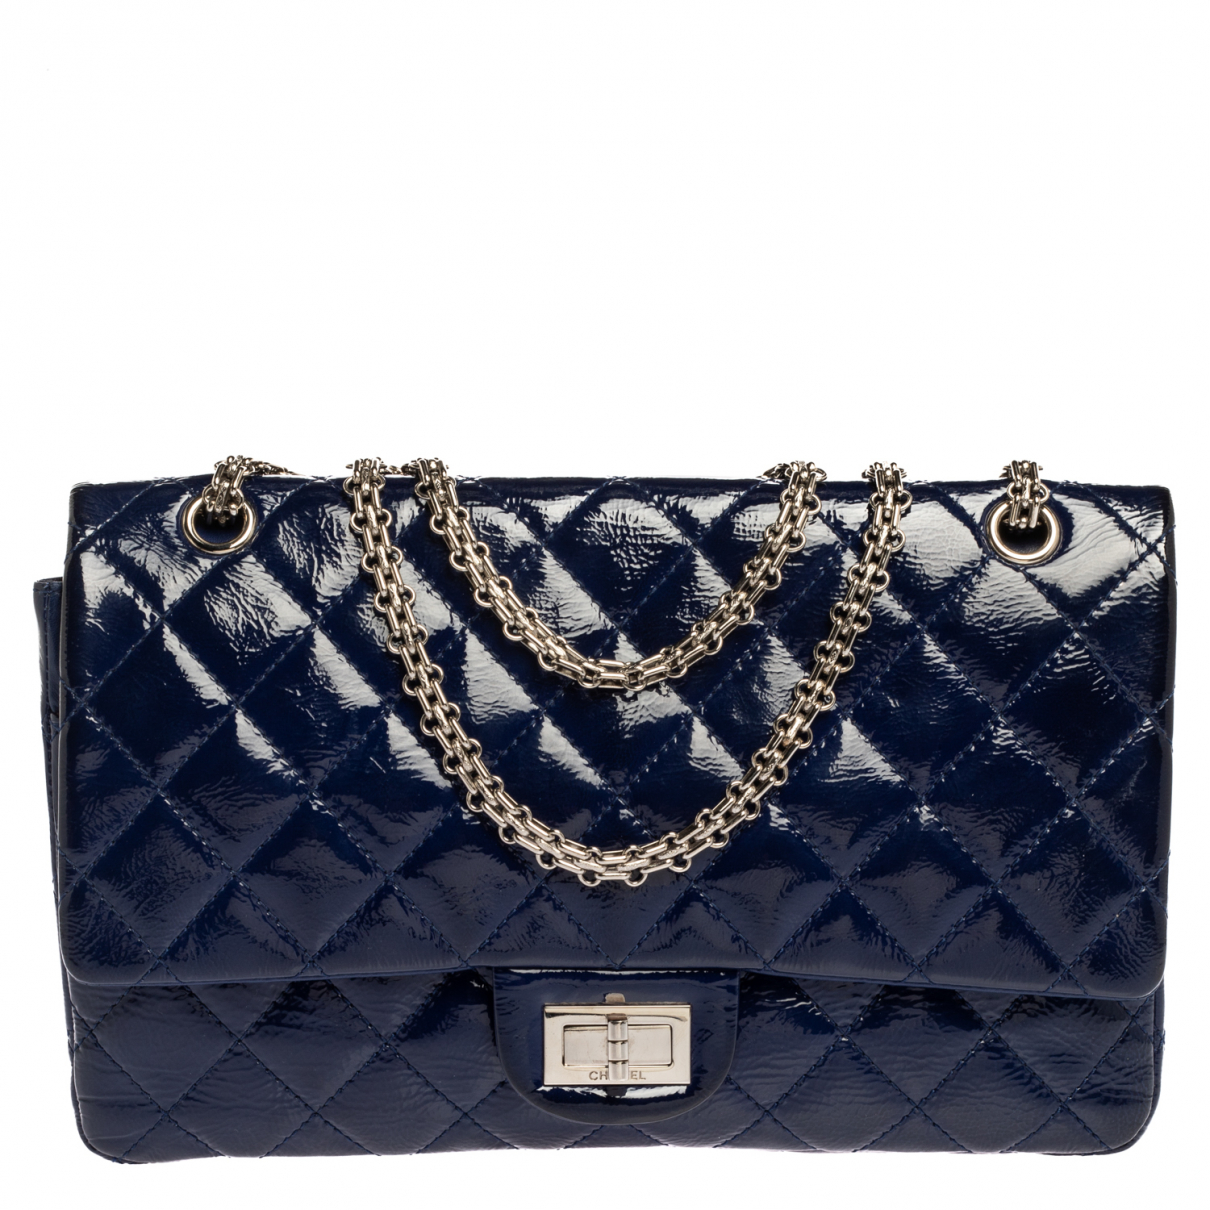 Chanel N Blue Patent leather handbag for Women N